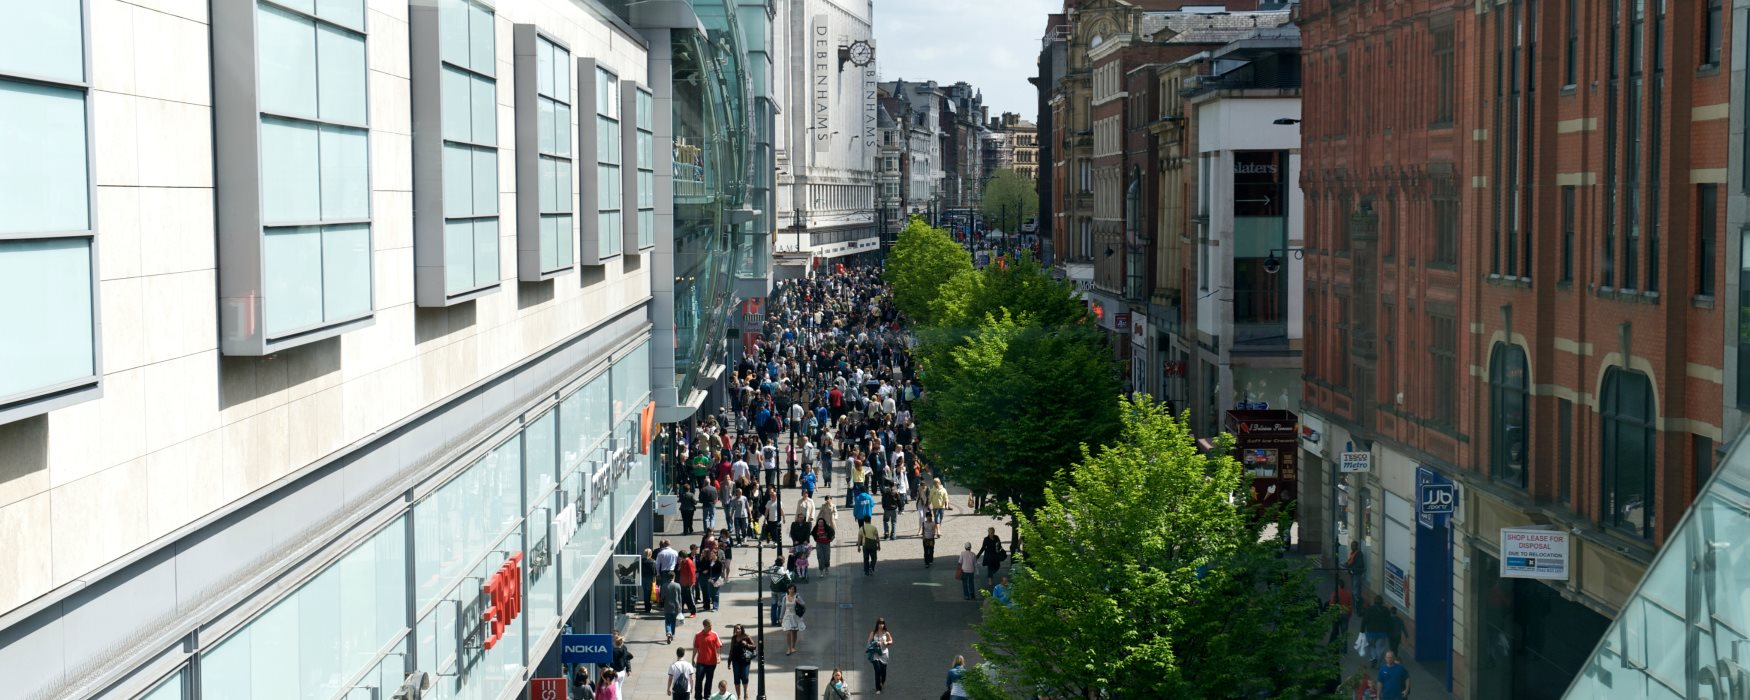 High Street Shops in Manchester